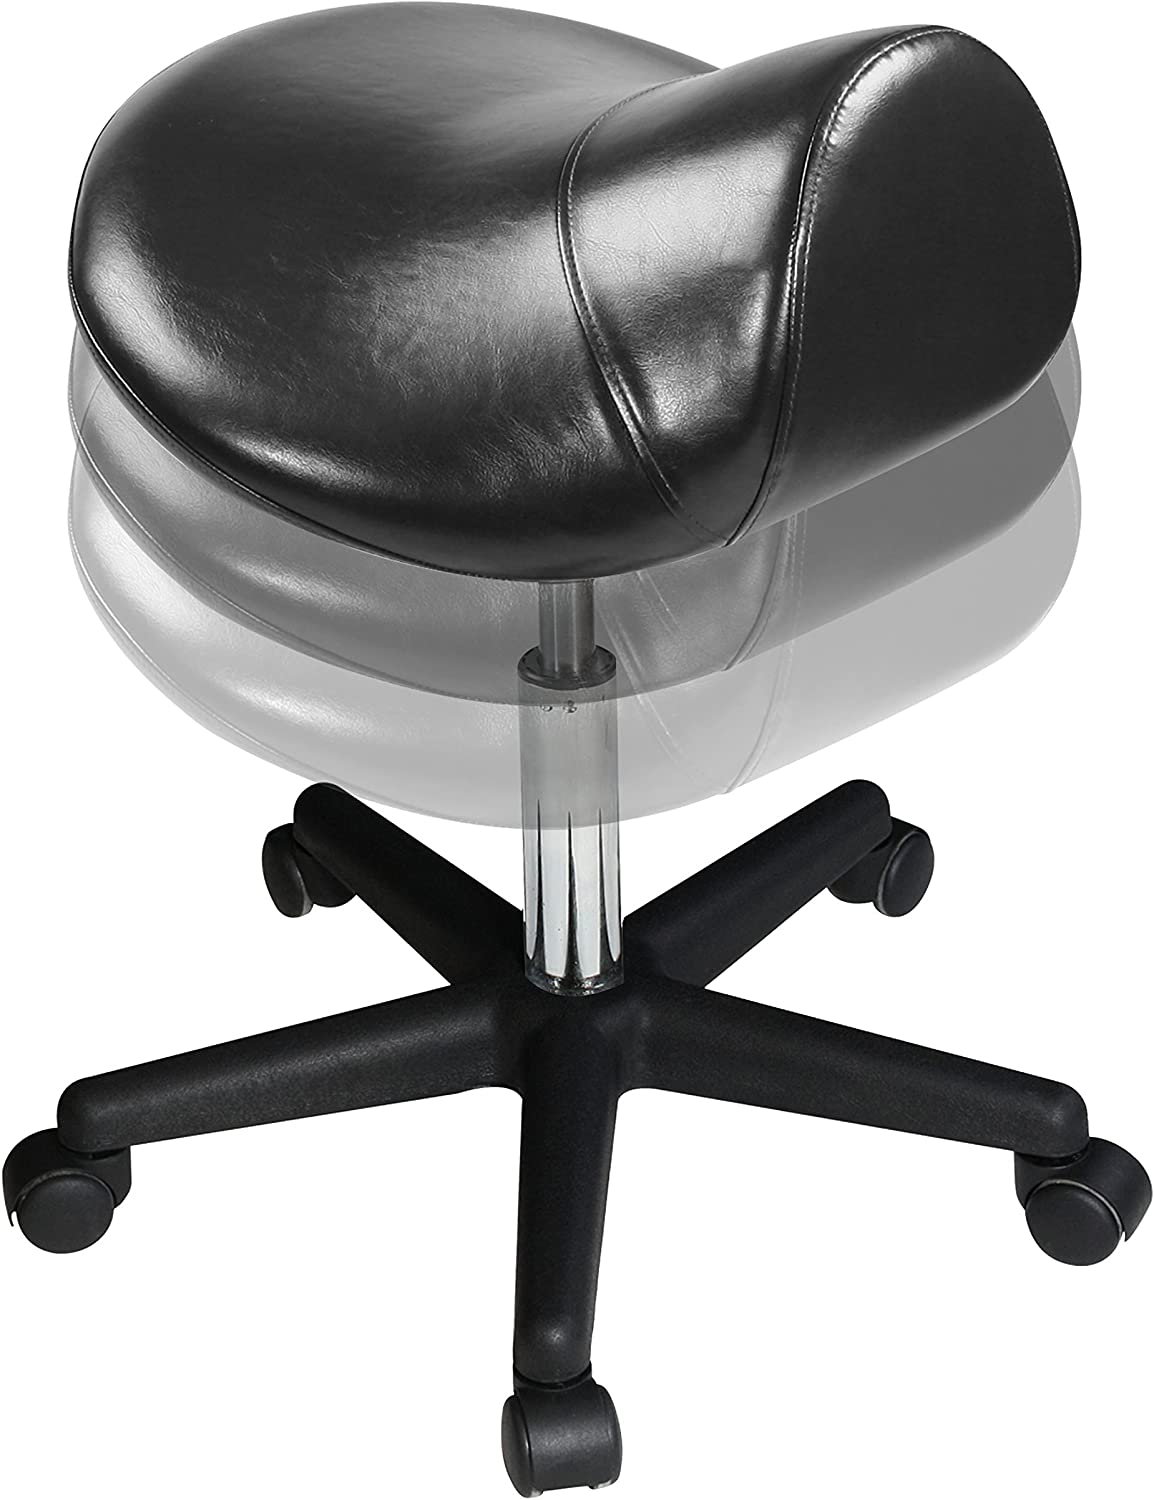 Master Massage Ergonomic Swivel Saddle Rolling Hydraulic Stool in Black for Clinic,spas,Salons,Home,Office: Health & Personal Care